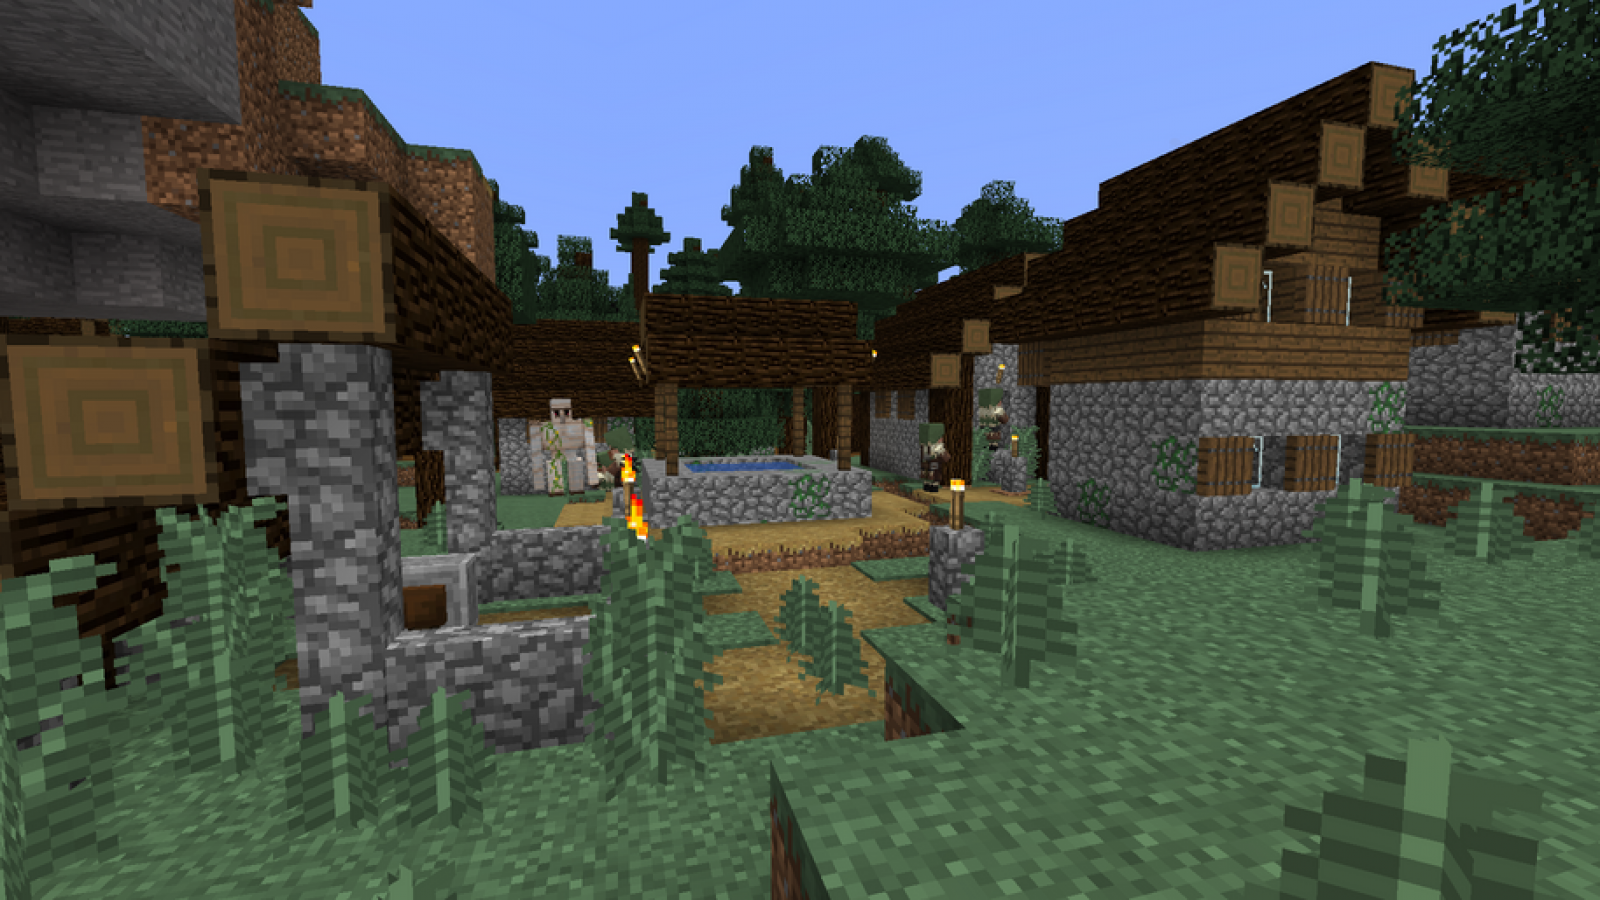 Best Minecraft 114 Seeds 7 New Village And Pillage Seeds